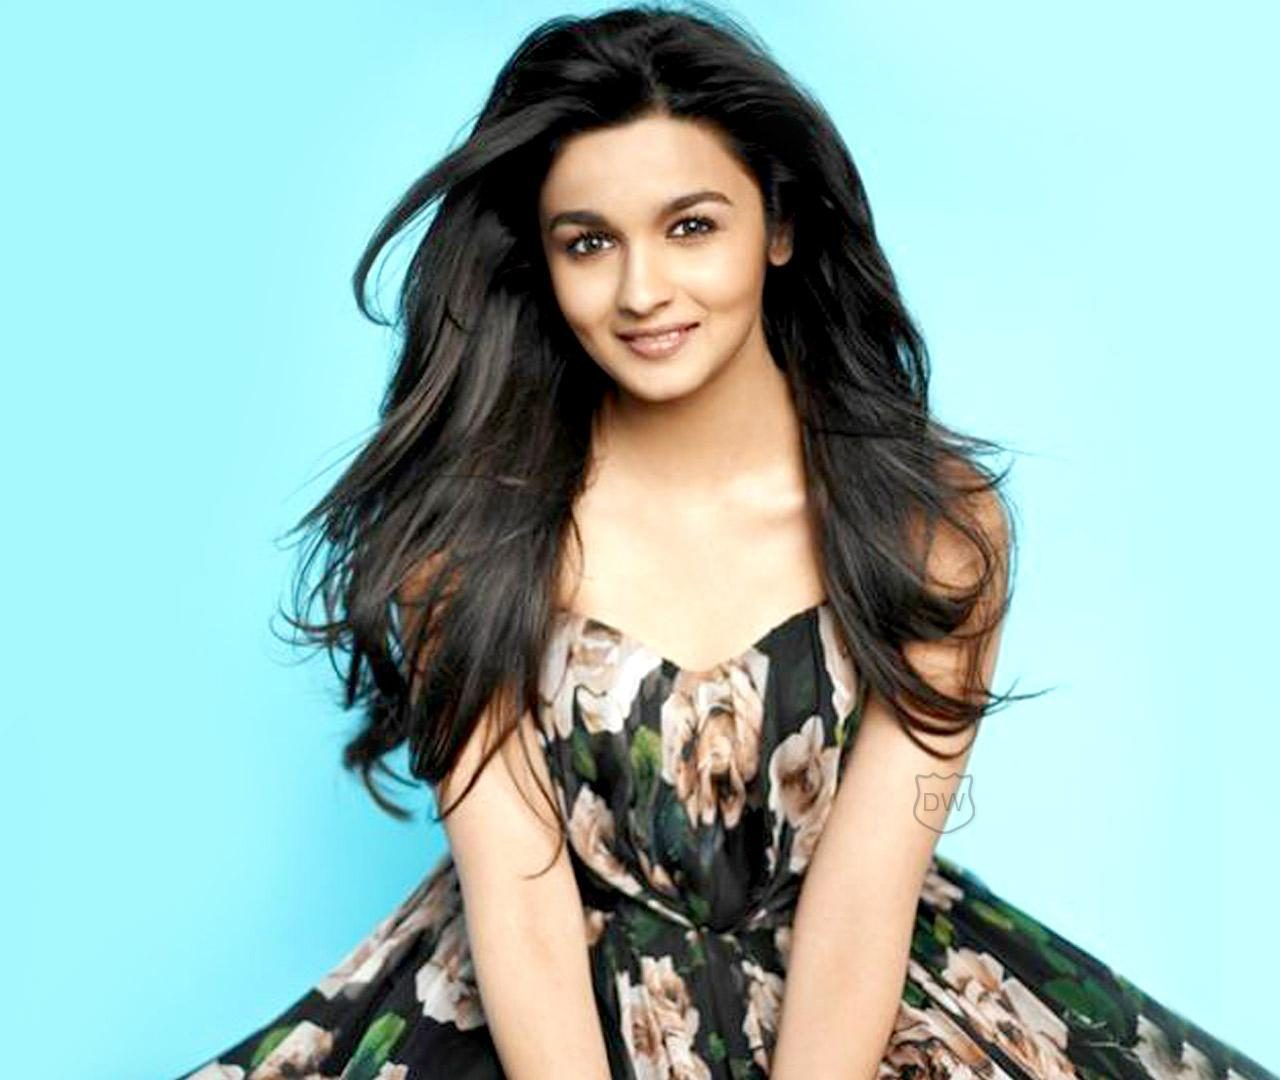 Islamic Quotes Wallpapers Iphone Alia Bhatt Cute Pictures Hd Wallpapers Hd Backgrounds